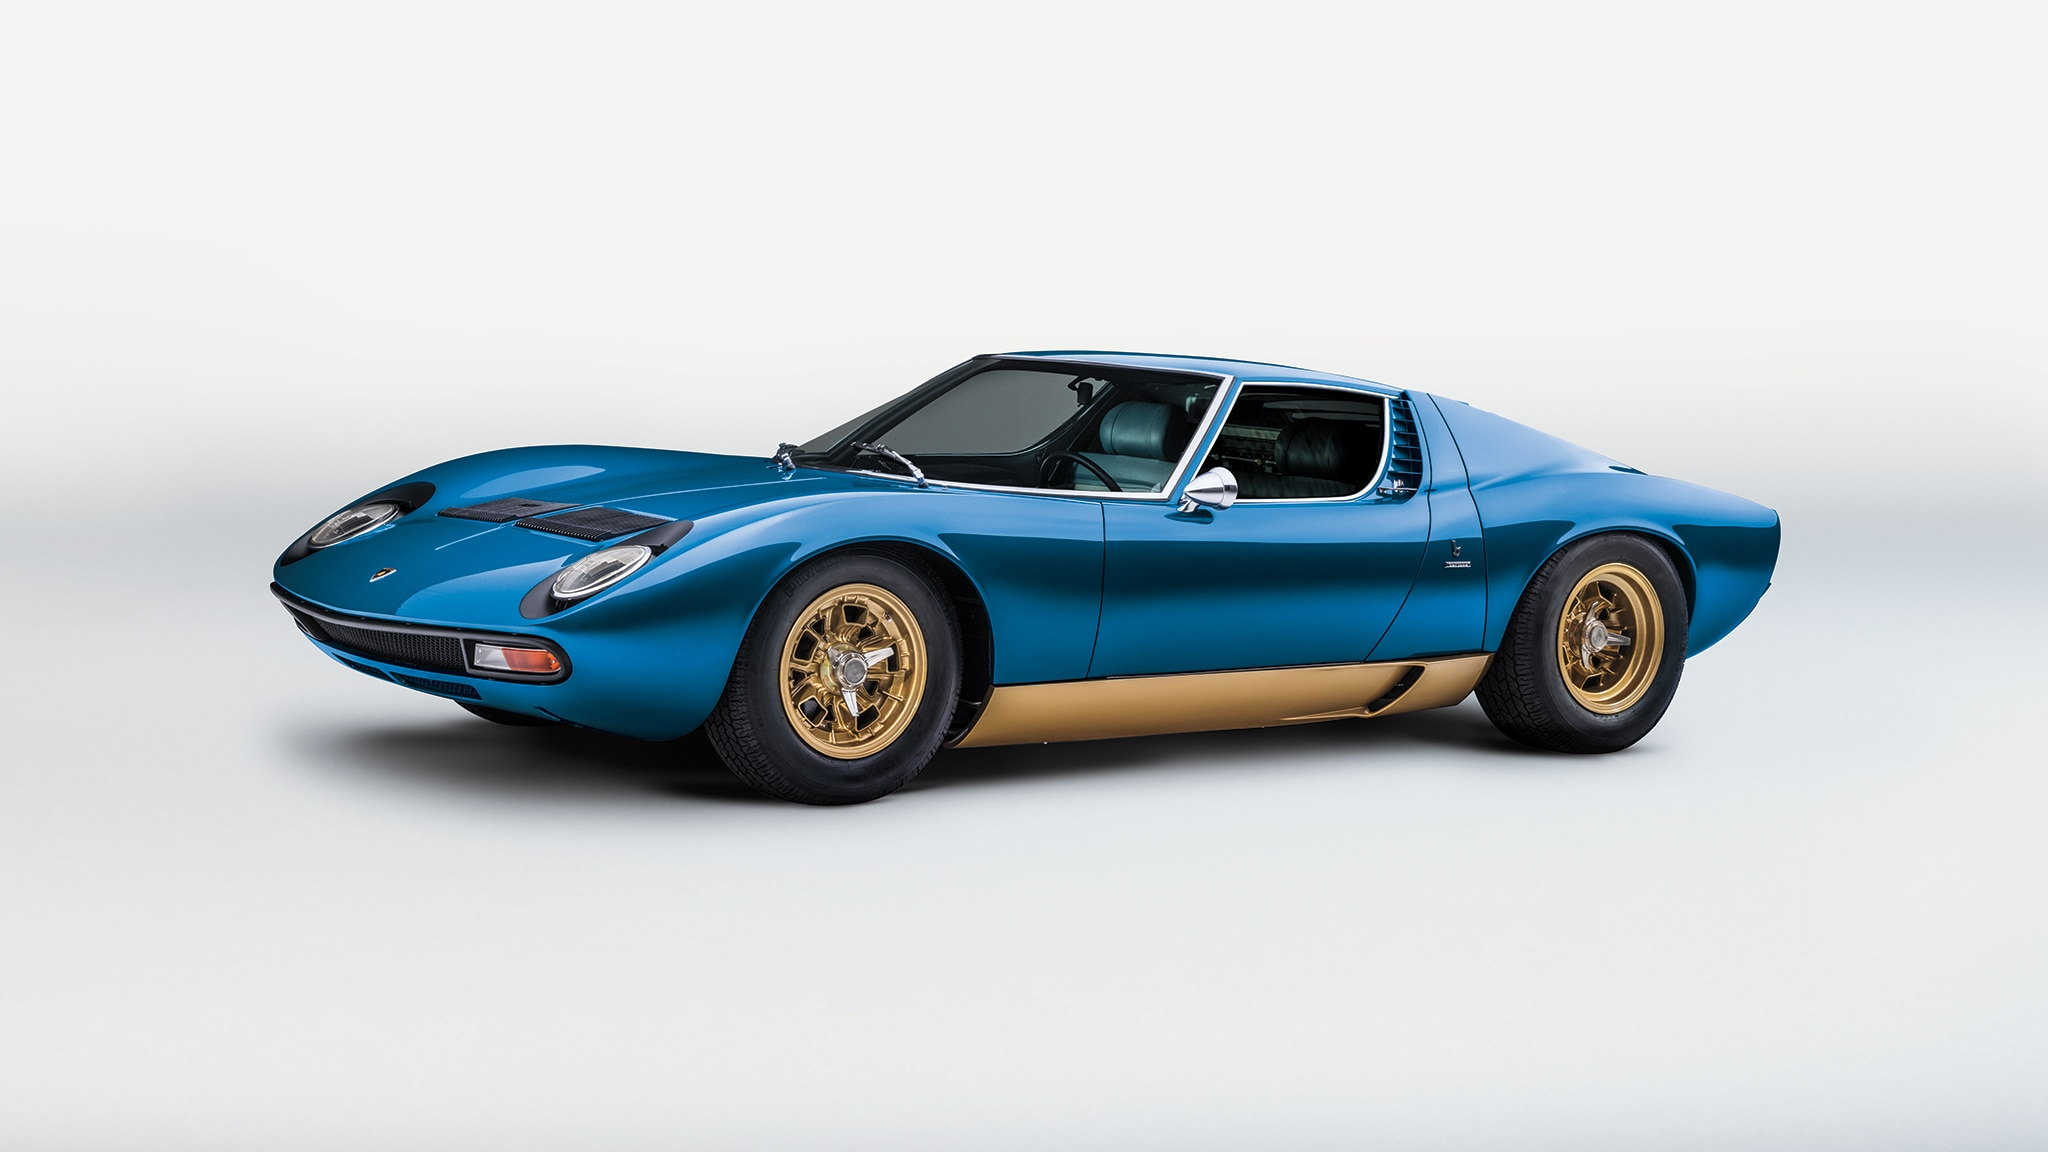 Original Influencer The History Of The Lamborghini Miura